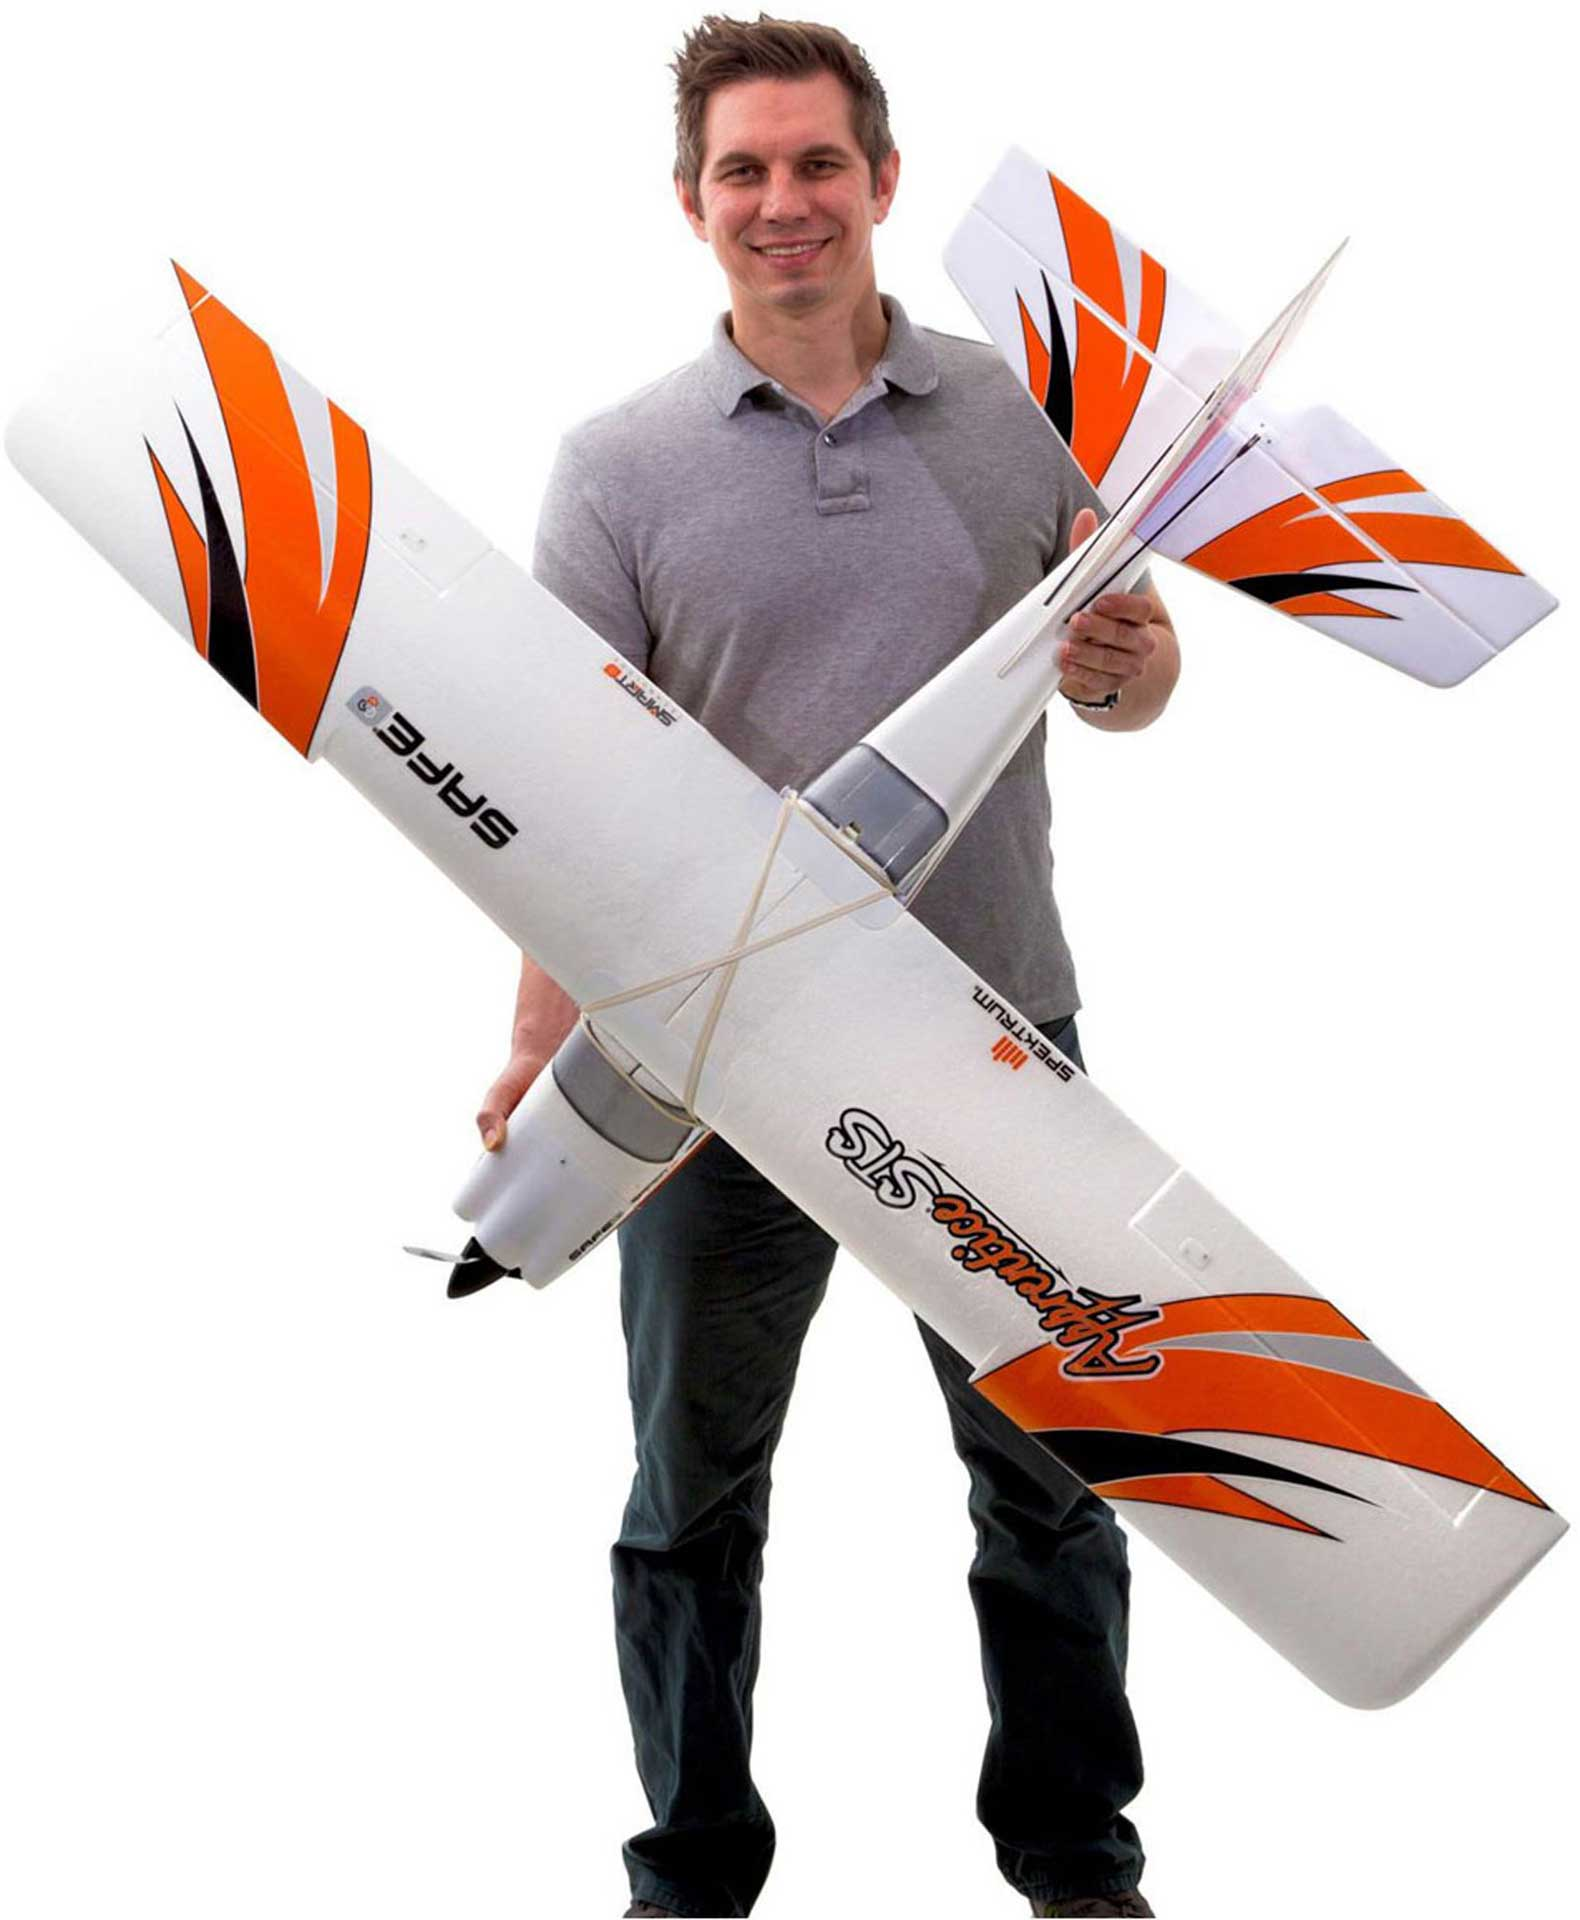 E-Flite APPRENTICE STS 1,5M BNF BASIC WITH SAFE TRAINER